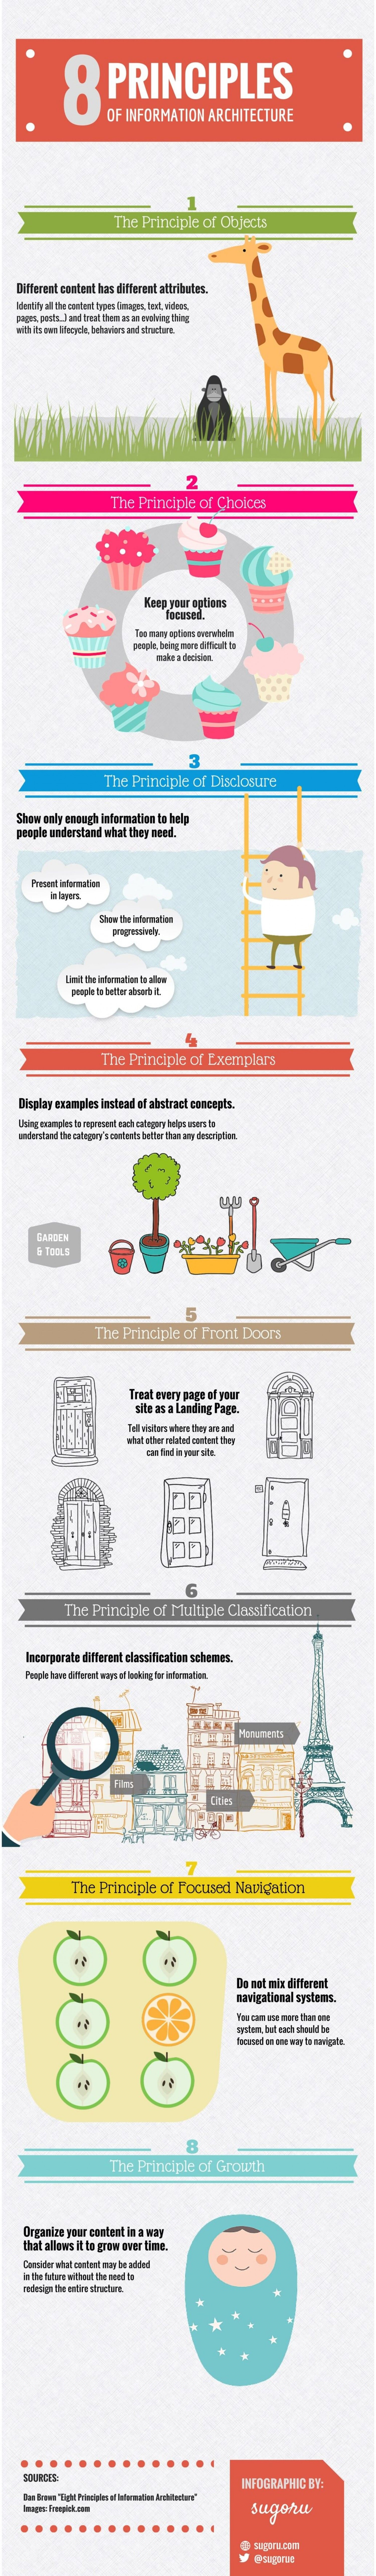 Eight Principles of Information Architecture Infographic